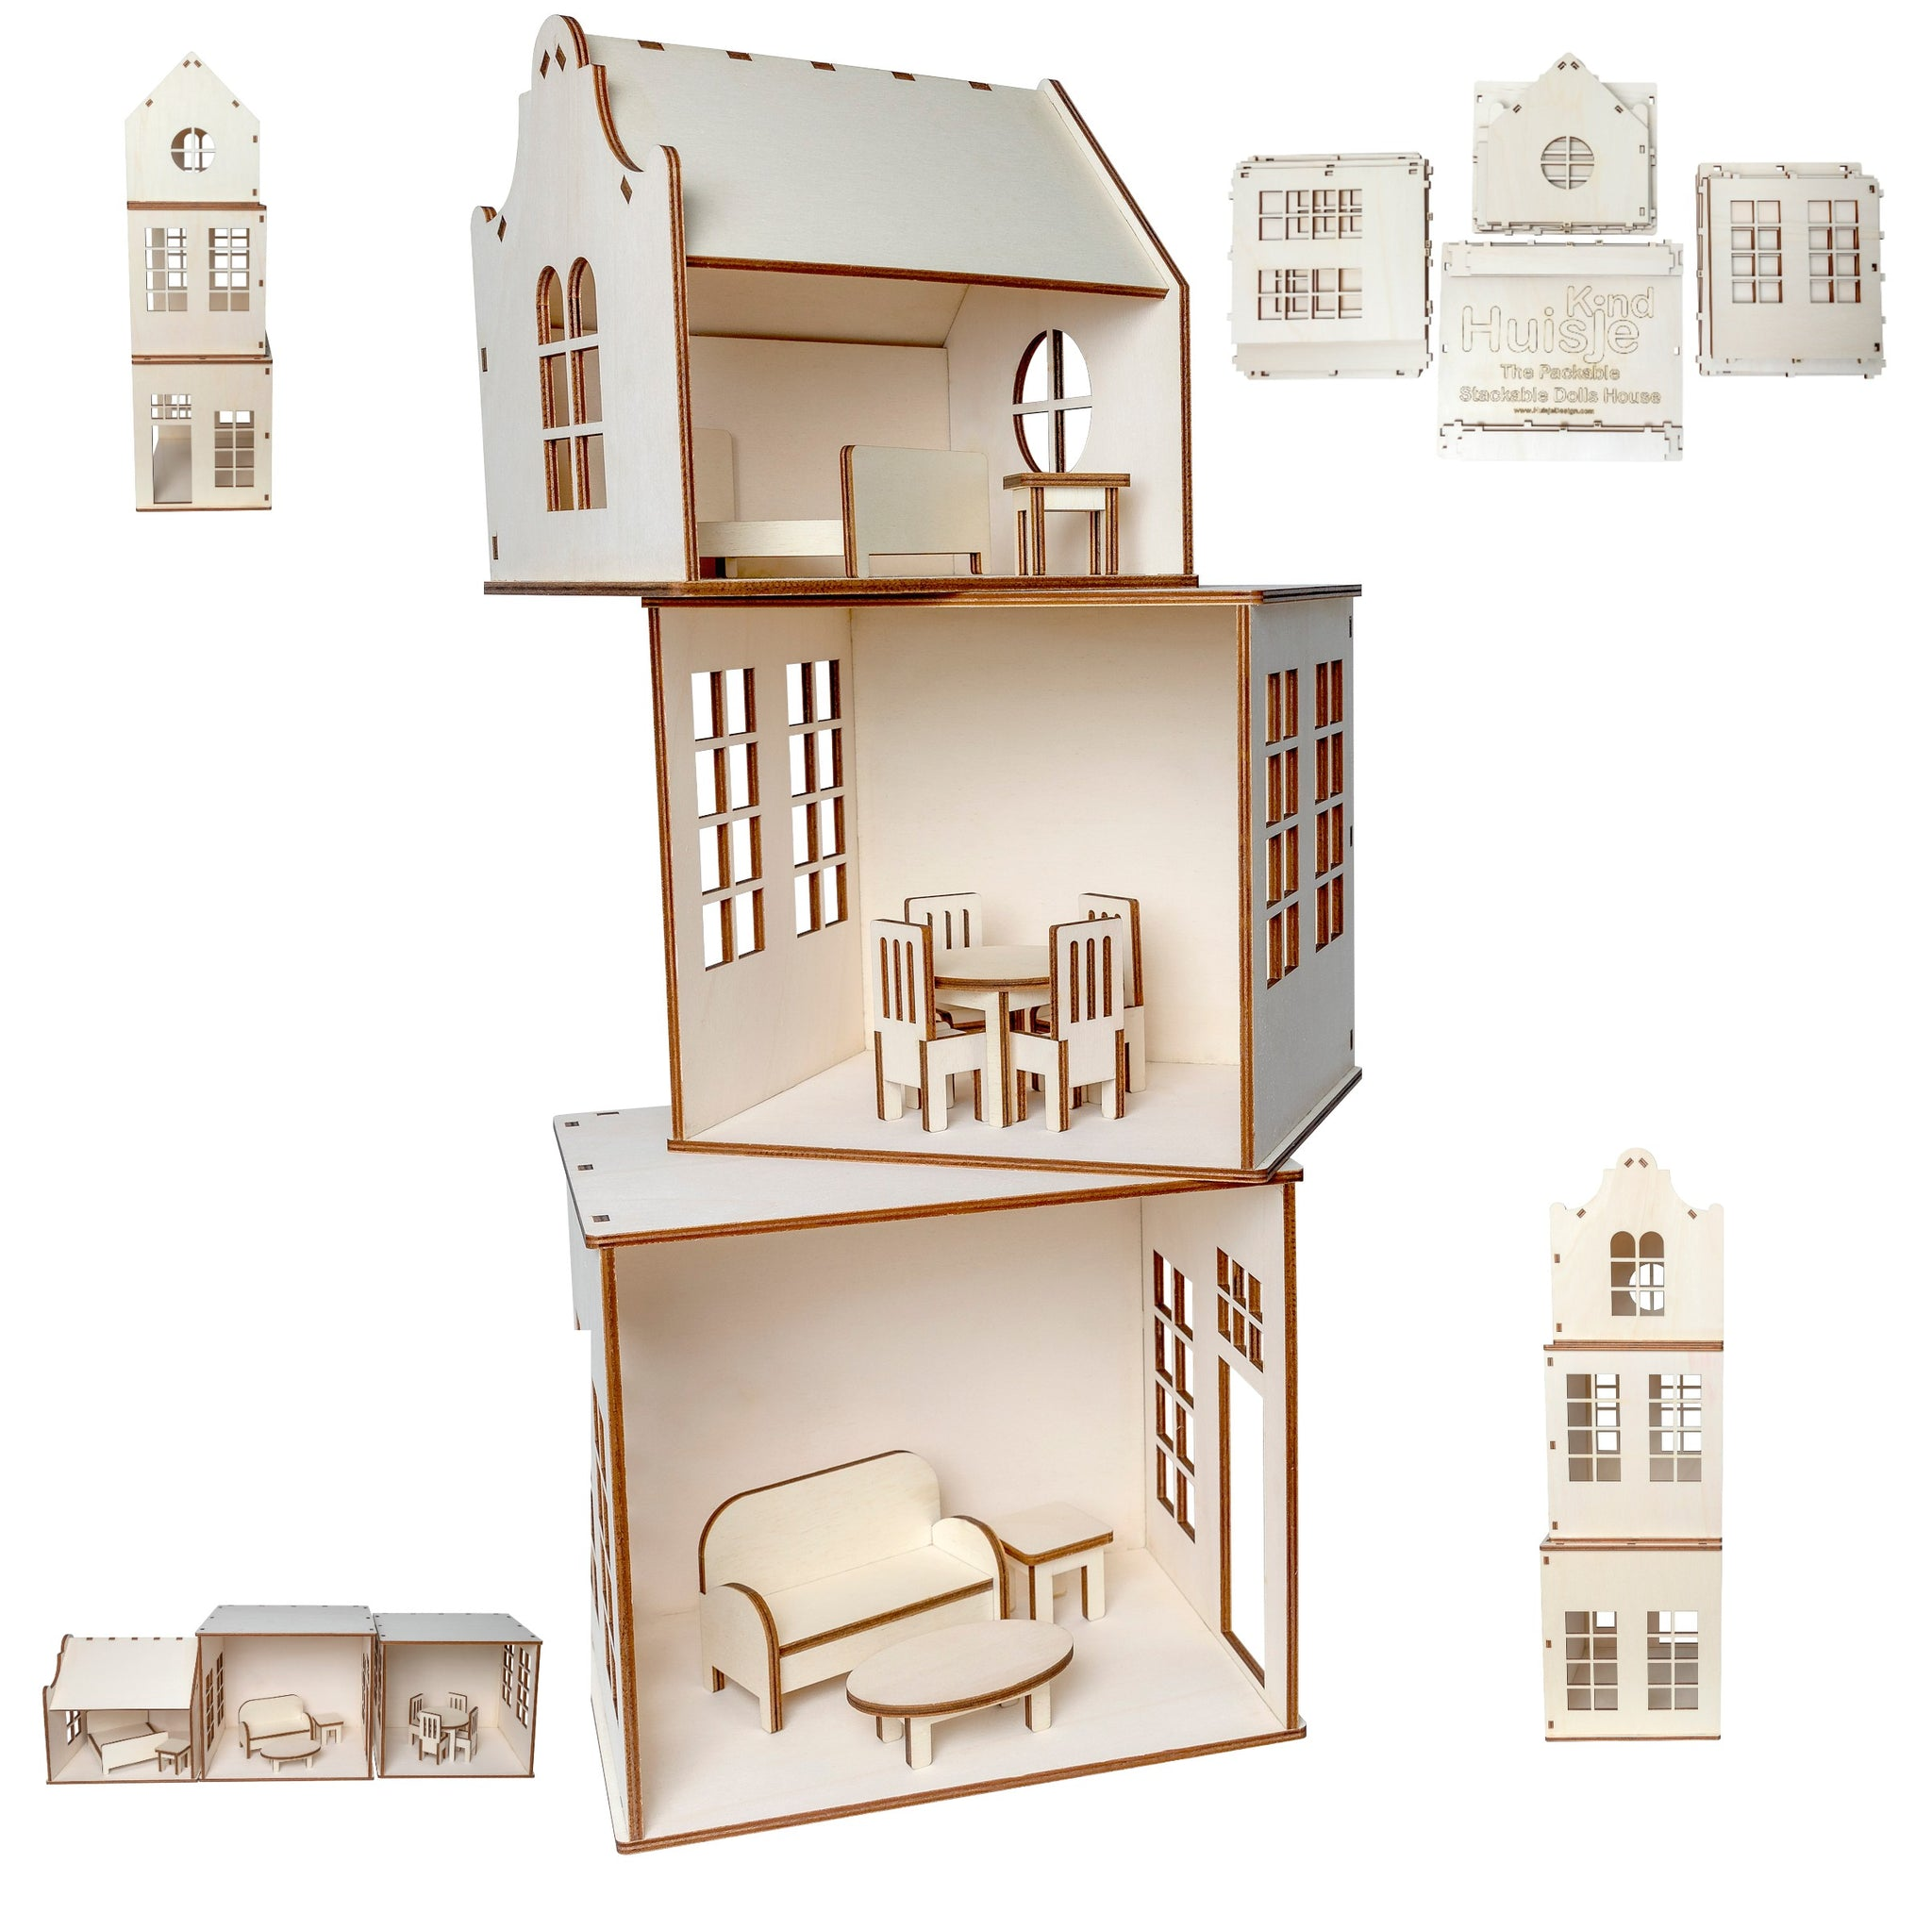 Wooden Play House DIY Kit includes Pre-made Furniture